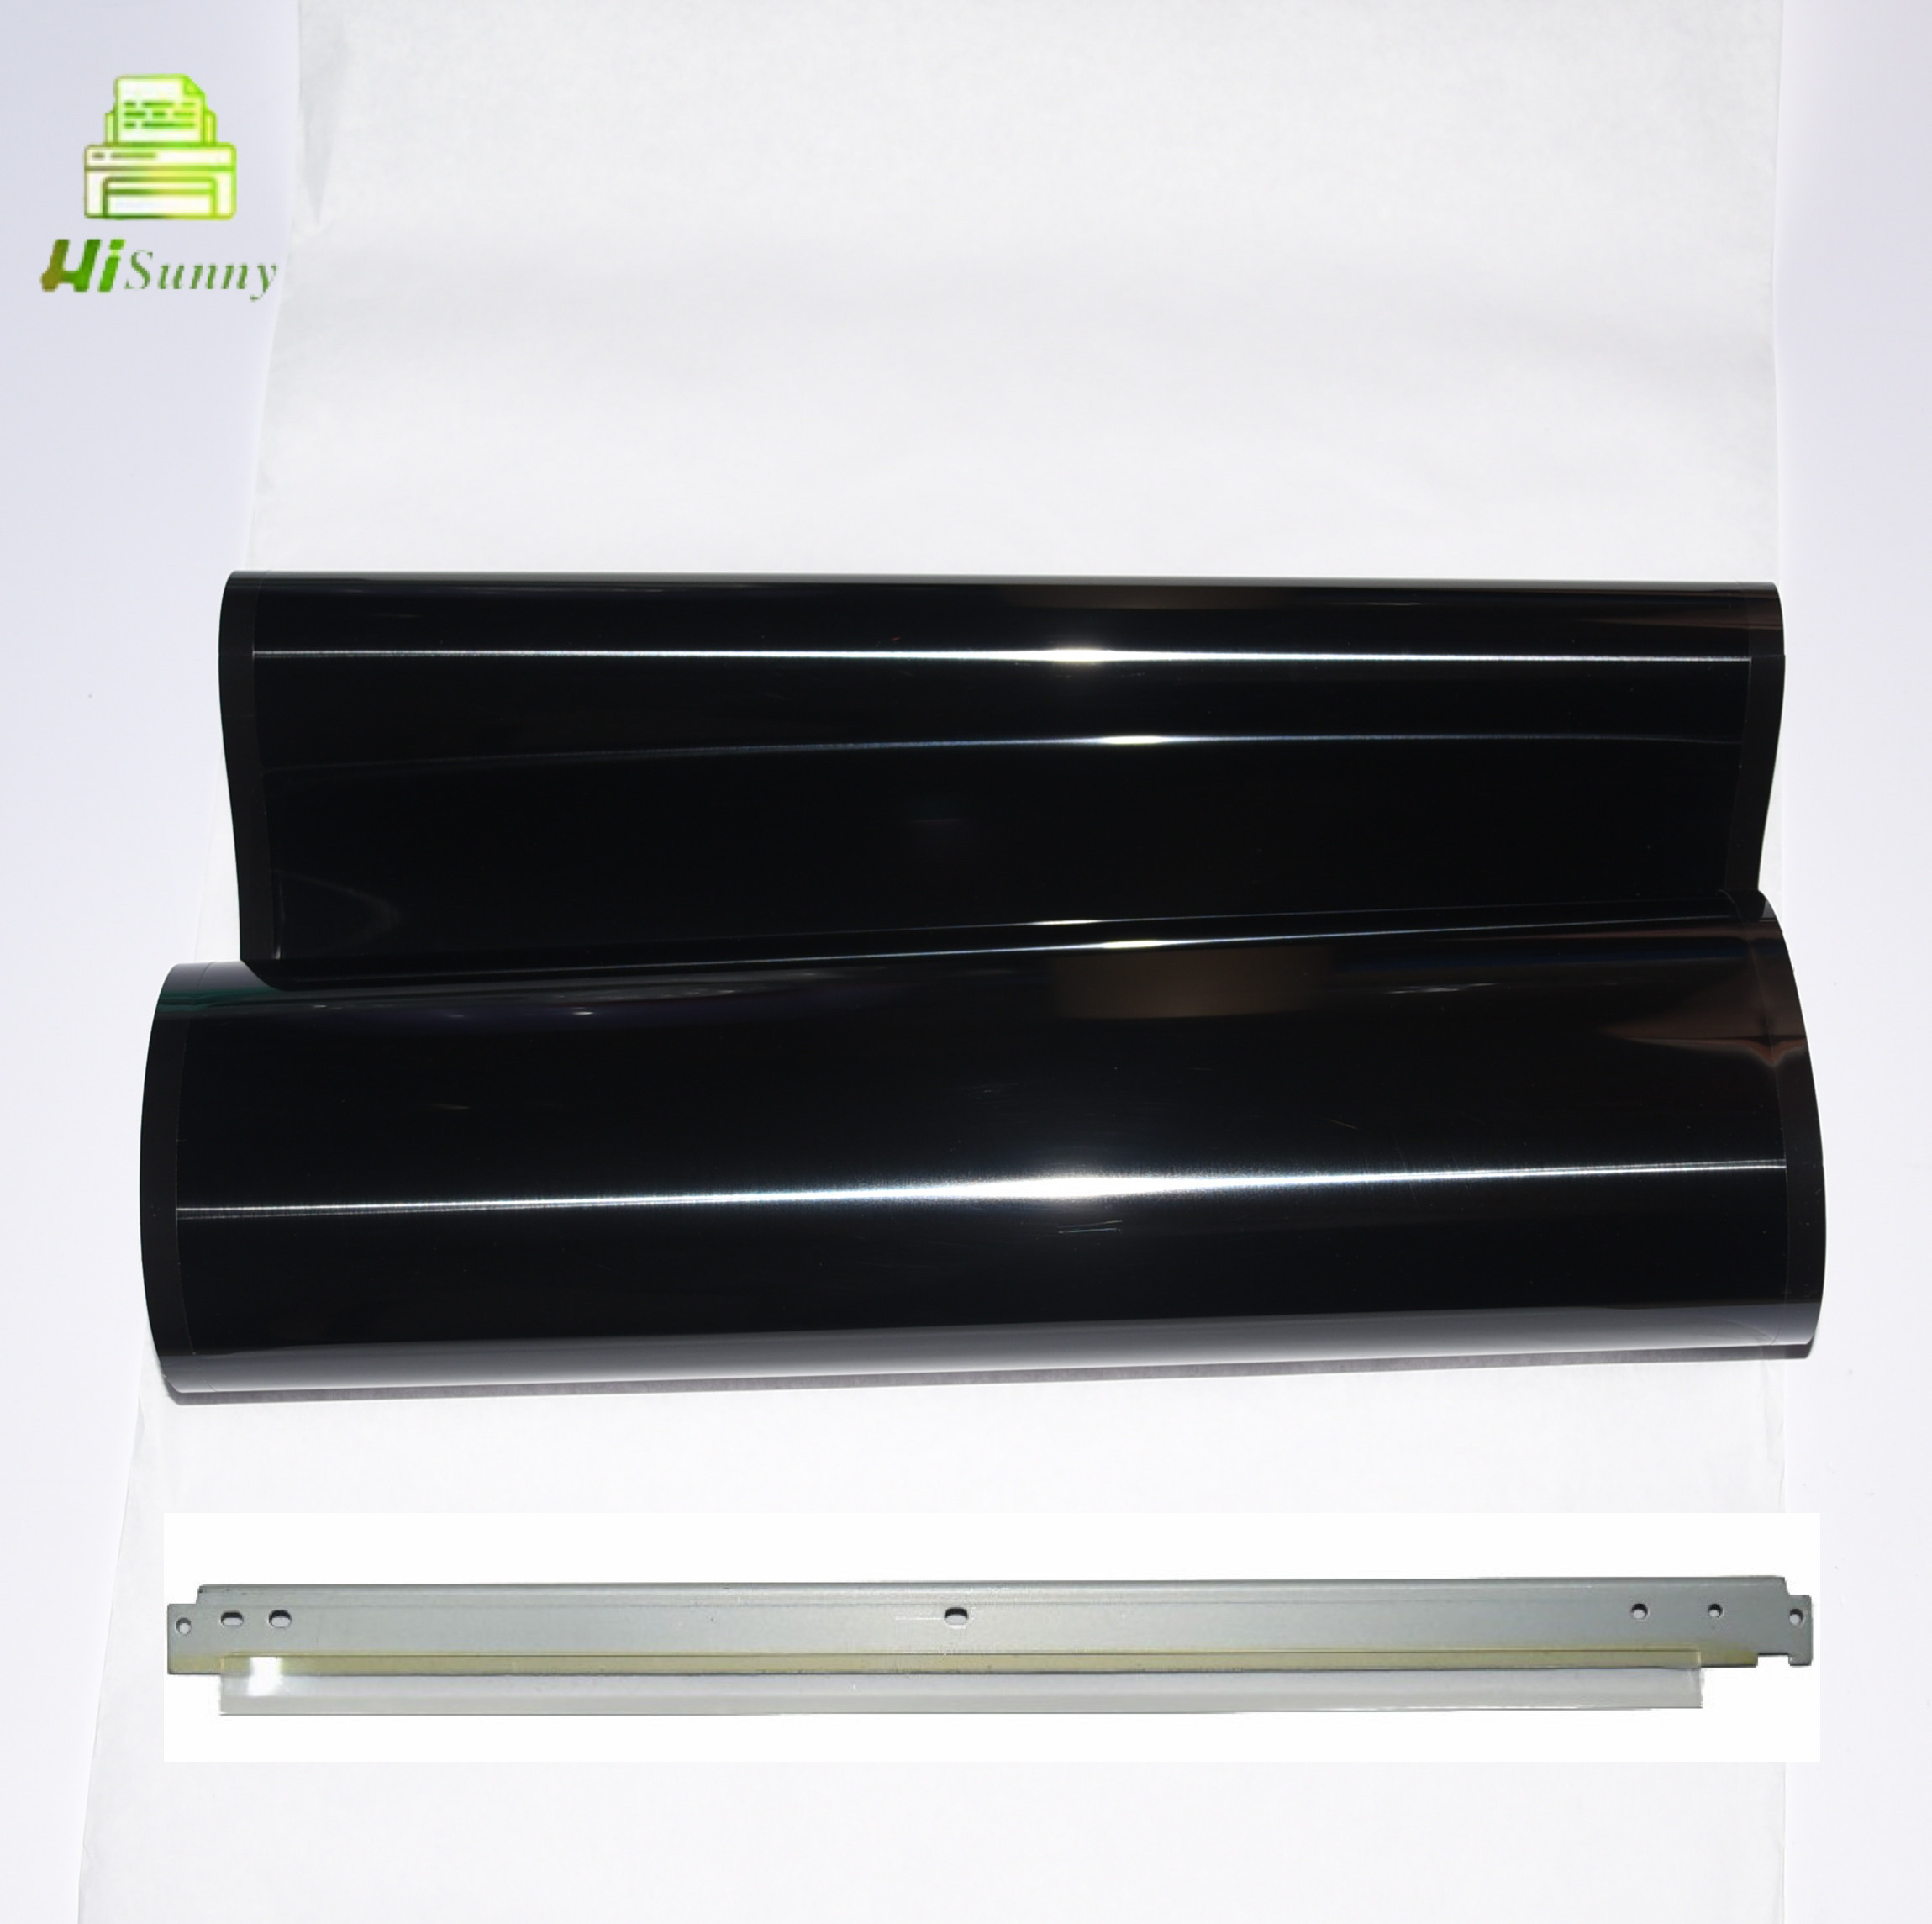 A02ER73011 For Konica Minolta Magicolor 8650dn 8650 C200 C203 C253 C353 Transfer Belt And Cleaning Blade